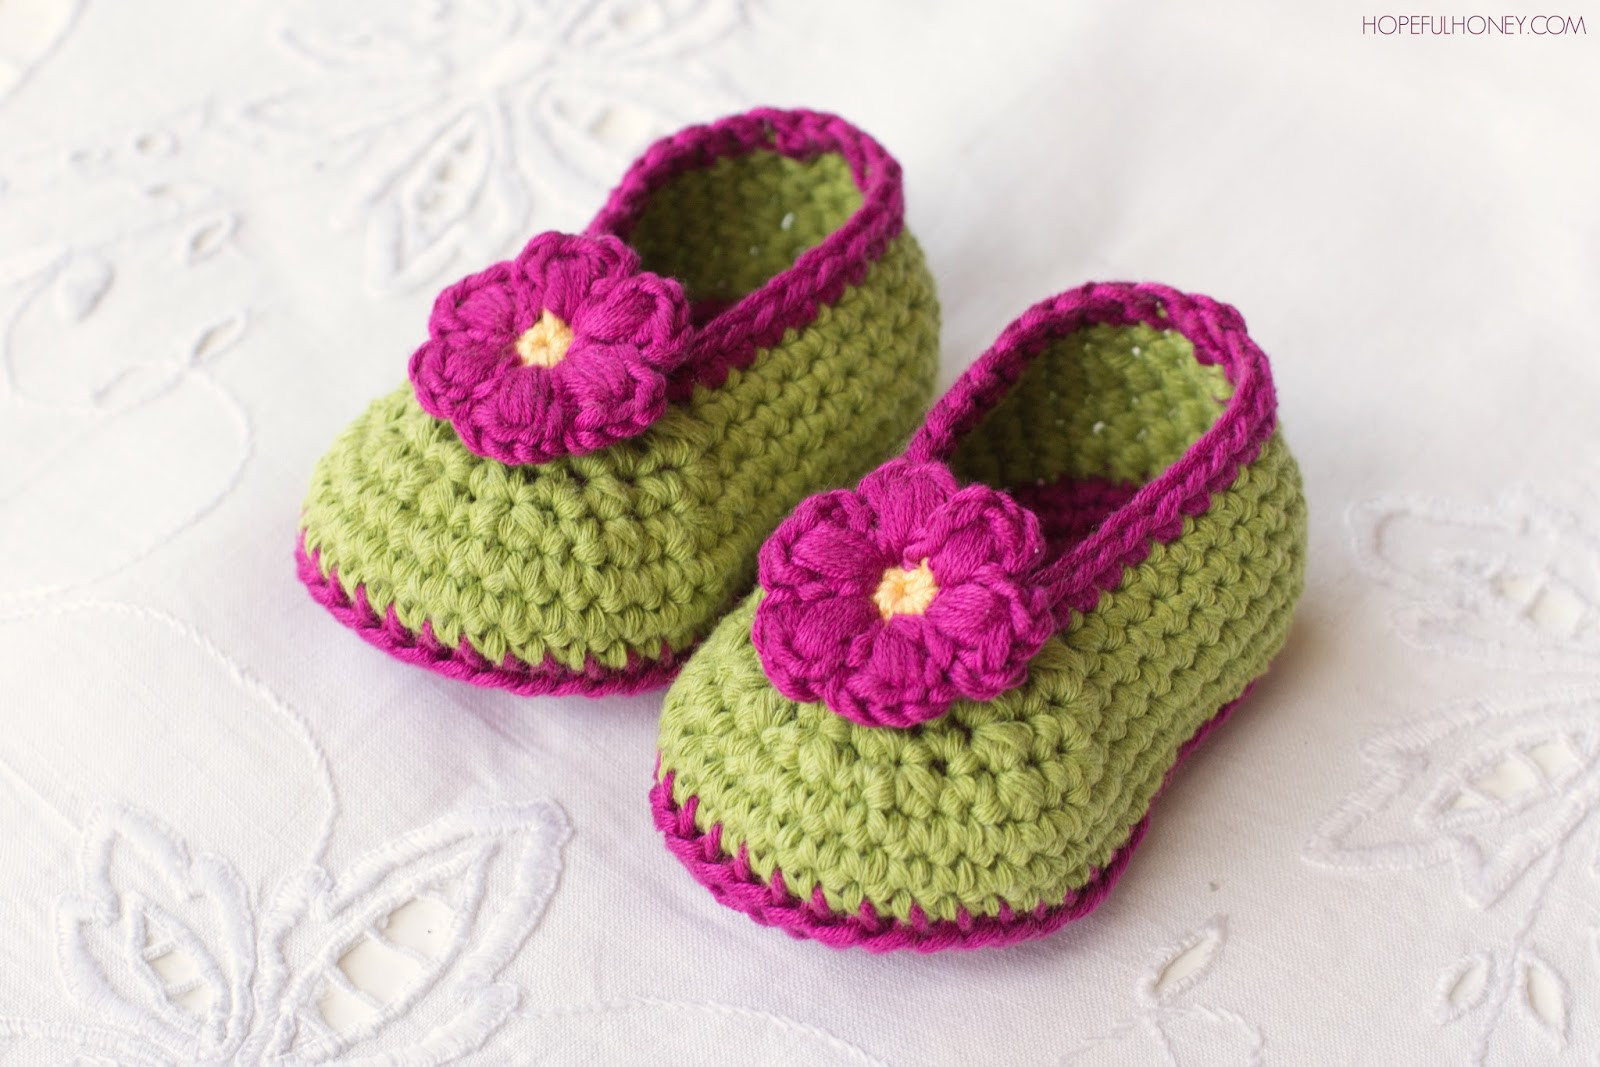 Free Baby Girl Crochet Patterns Unique Ideas for Your Baby Booties Crochet Yishifashion Of Fresh 40 Pics Free Baby Girl Crochet Patterns